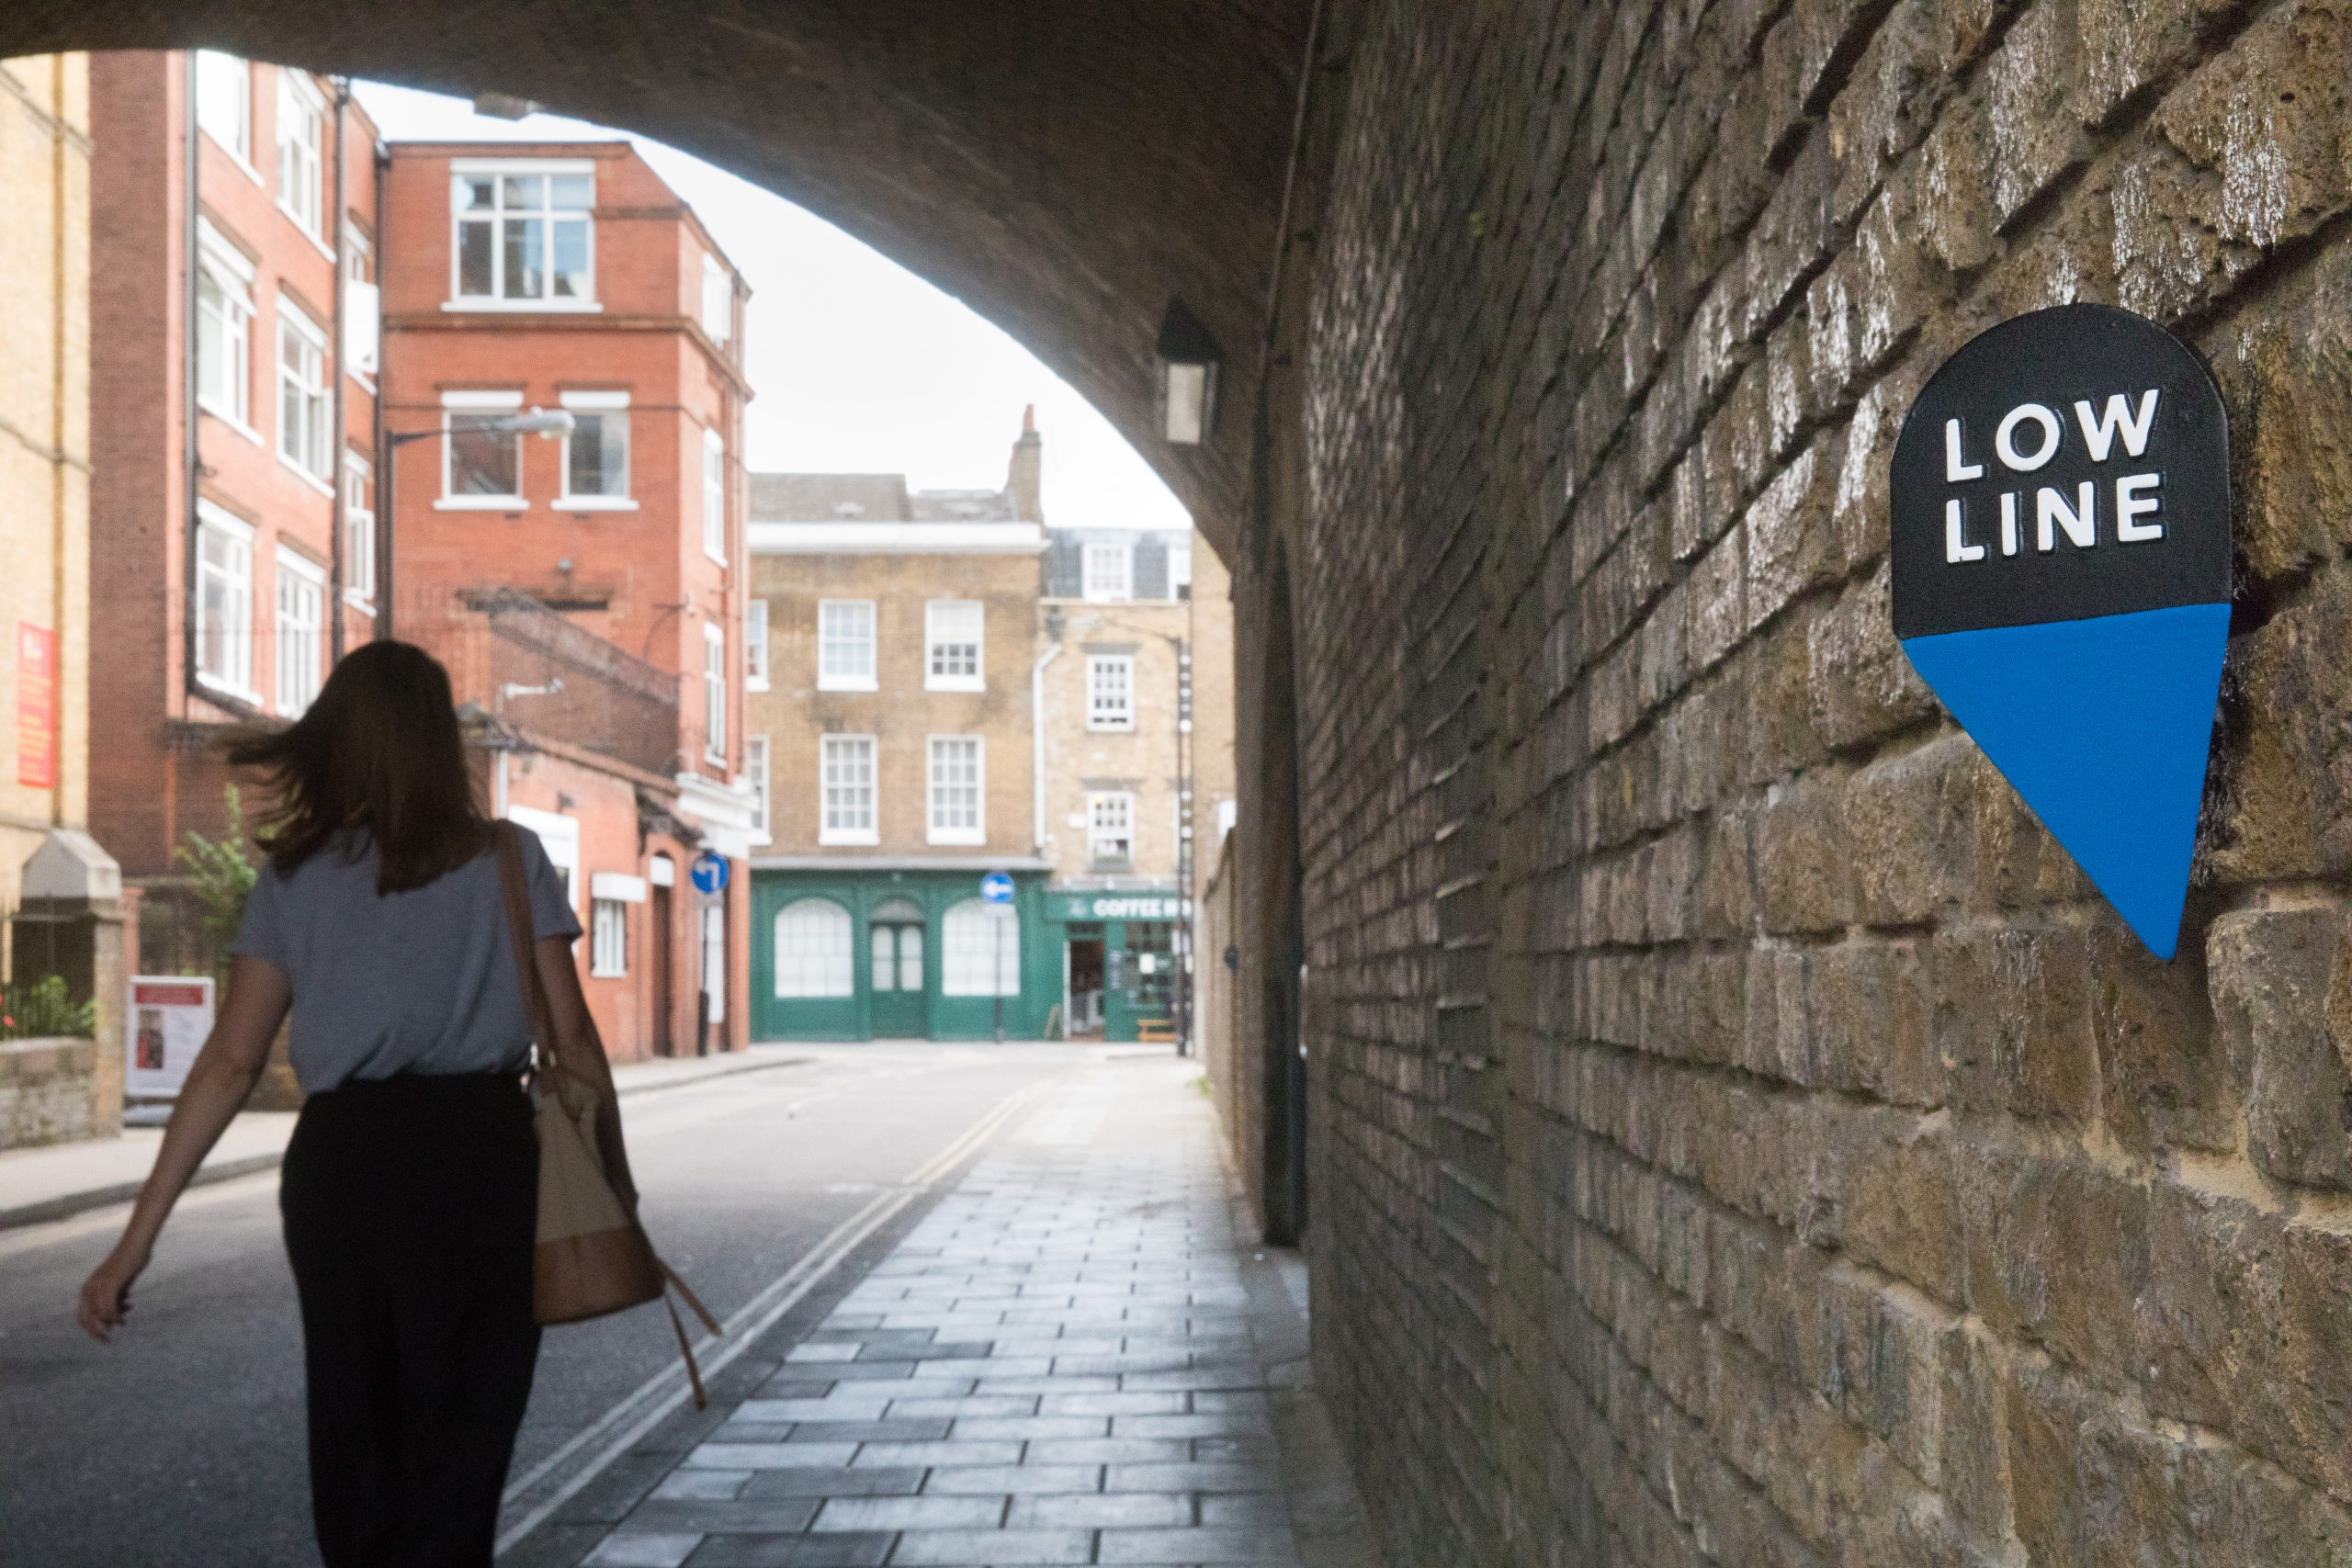 Image of a woman walking under an arch with the low line marker in the foreground